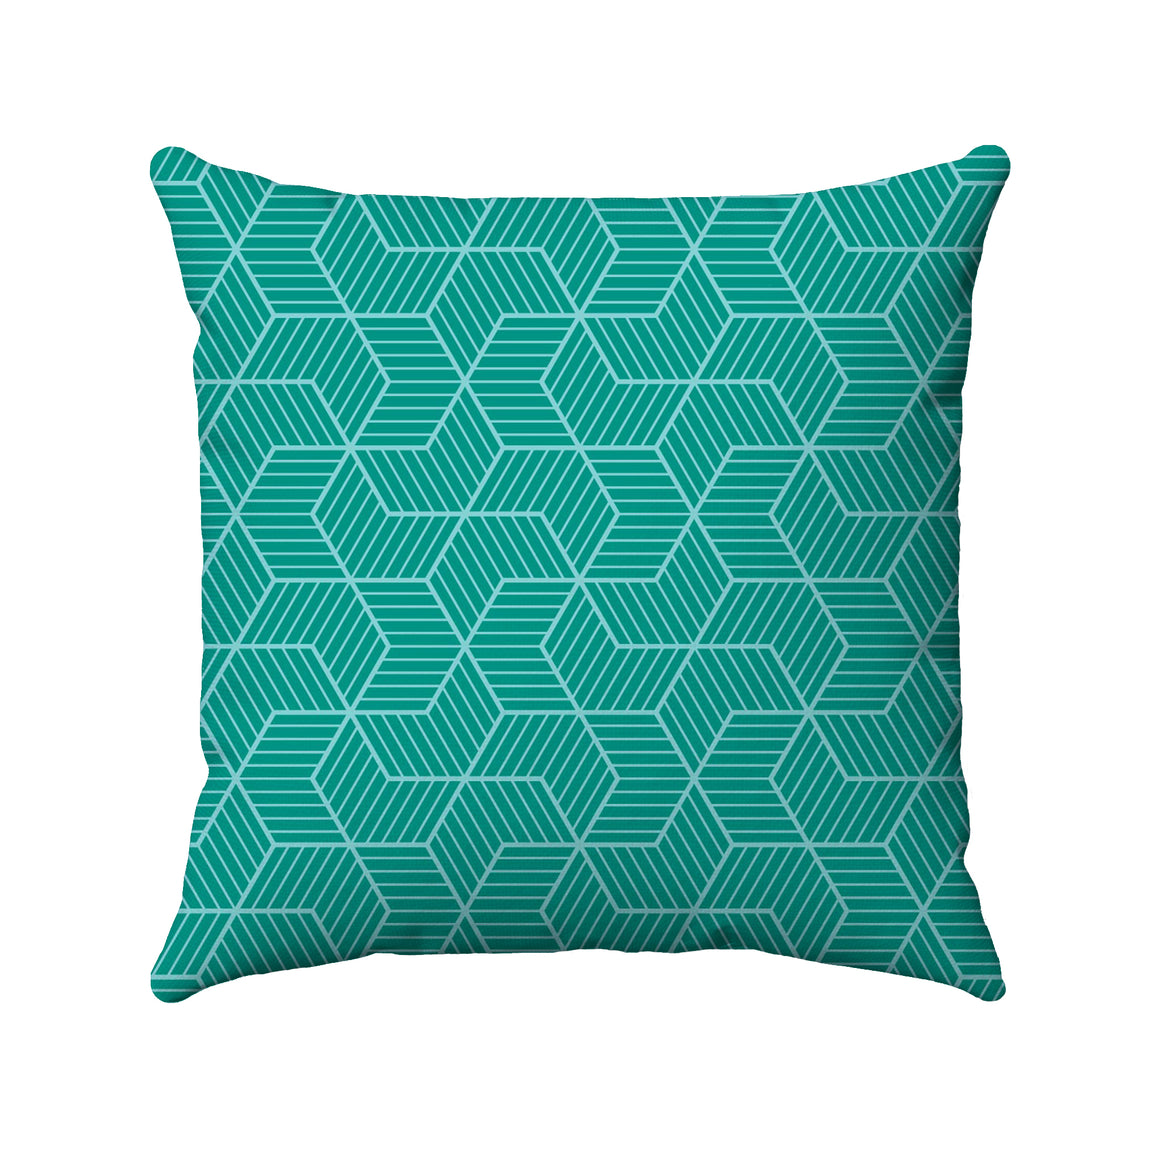 Two-color aqua and teal geometric line design arranged to look like several pinwheels intermingled.